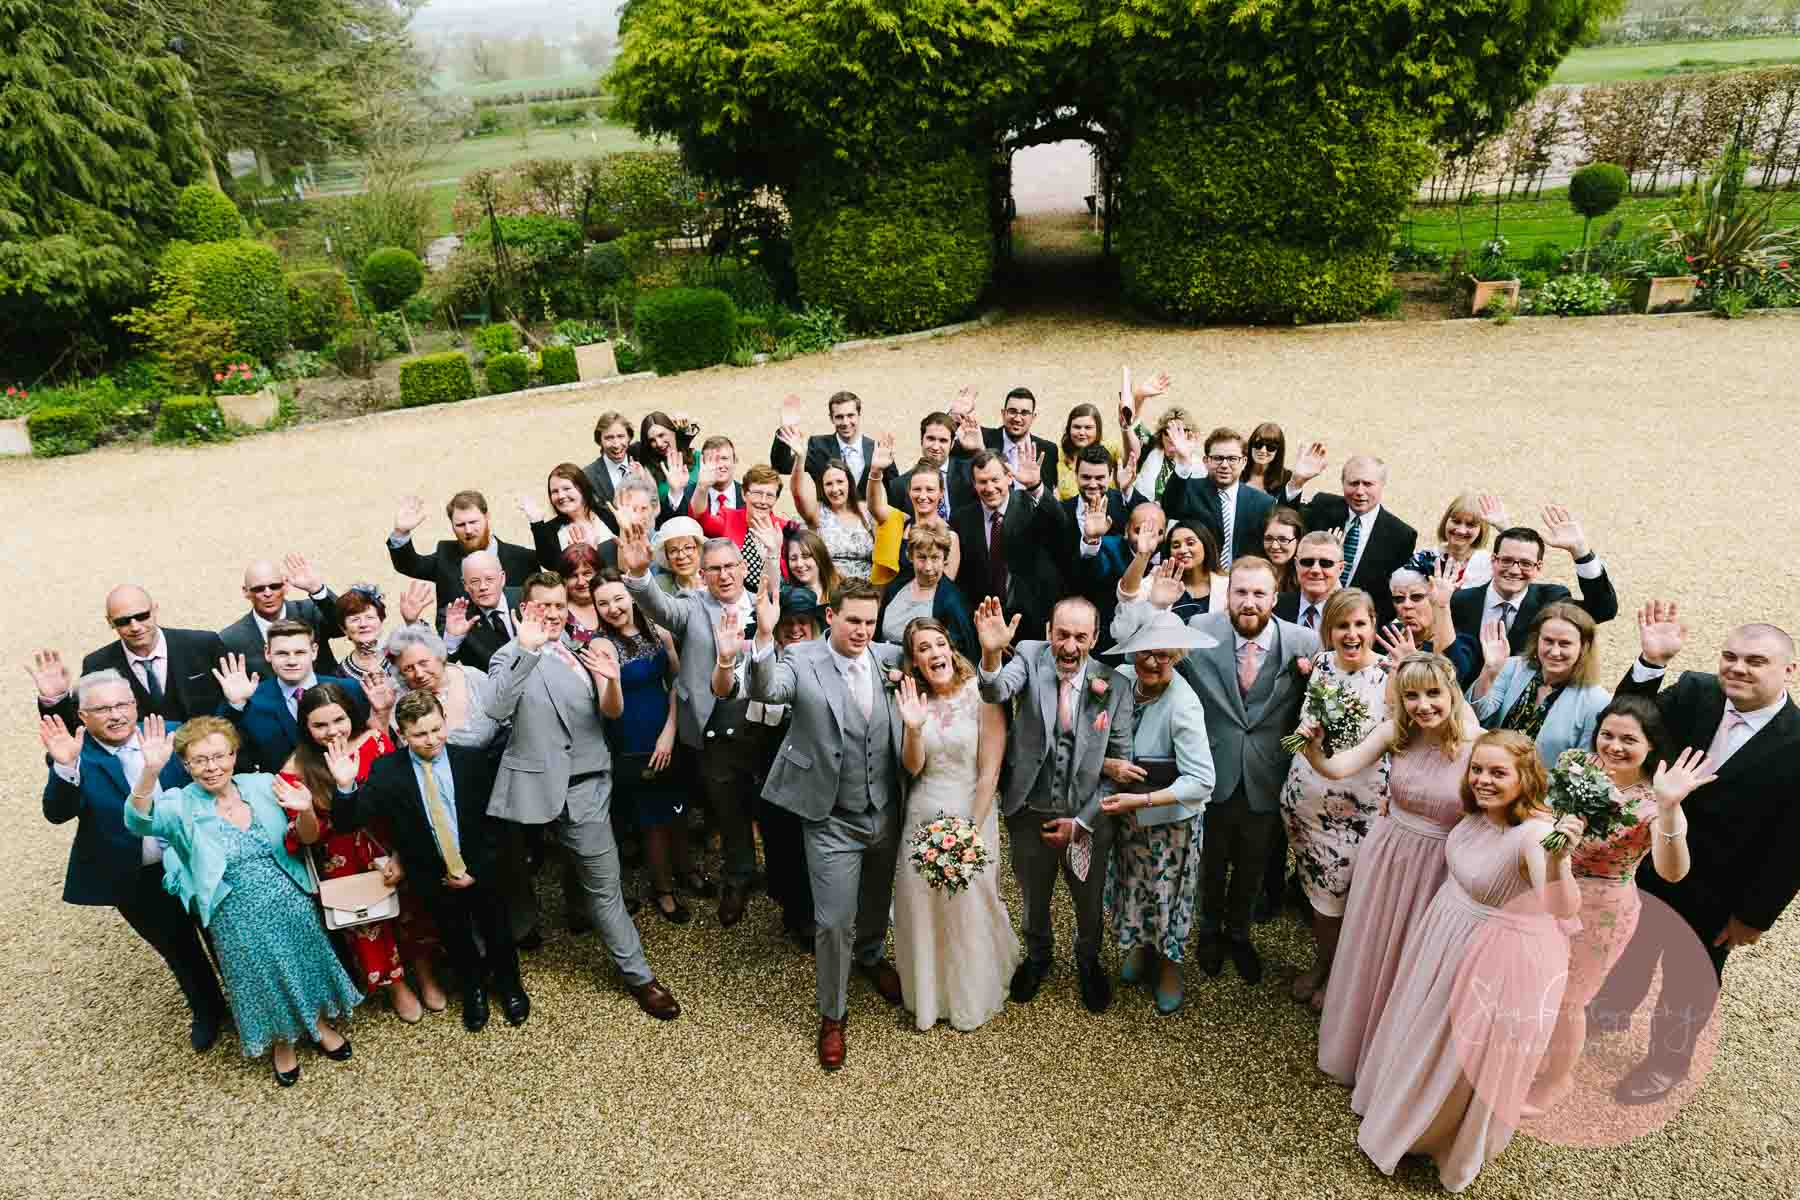 Wedding Group photo of all guests